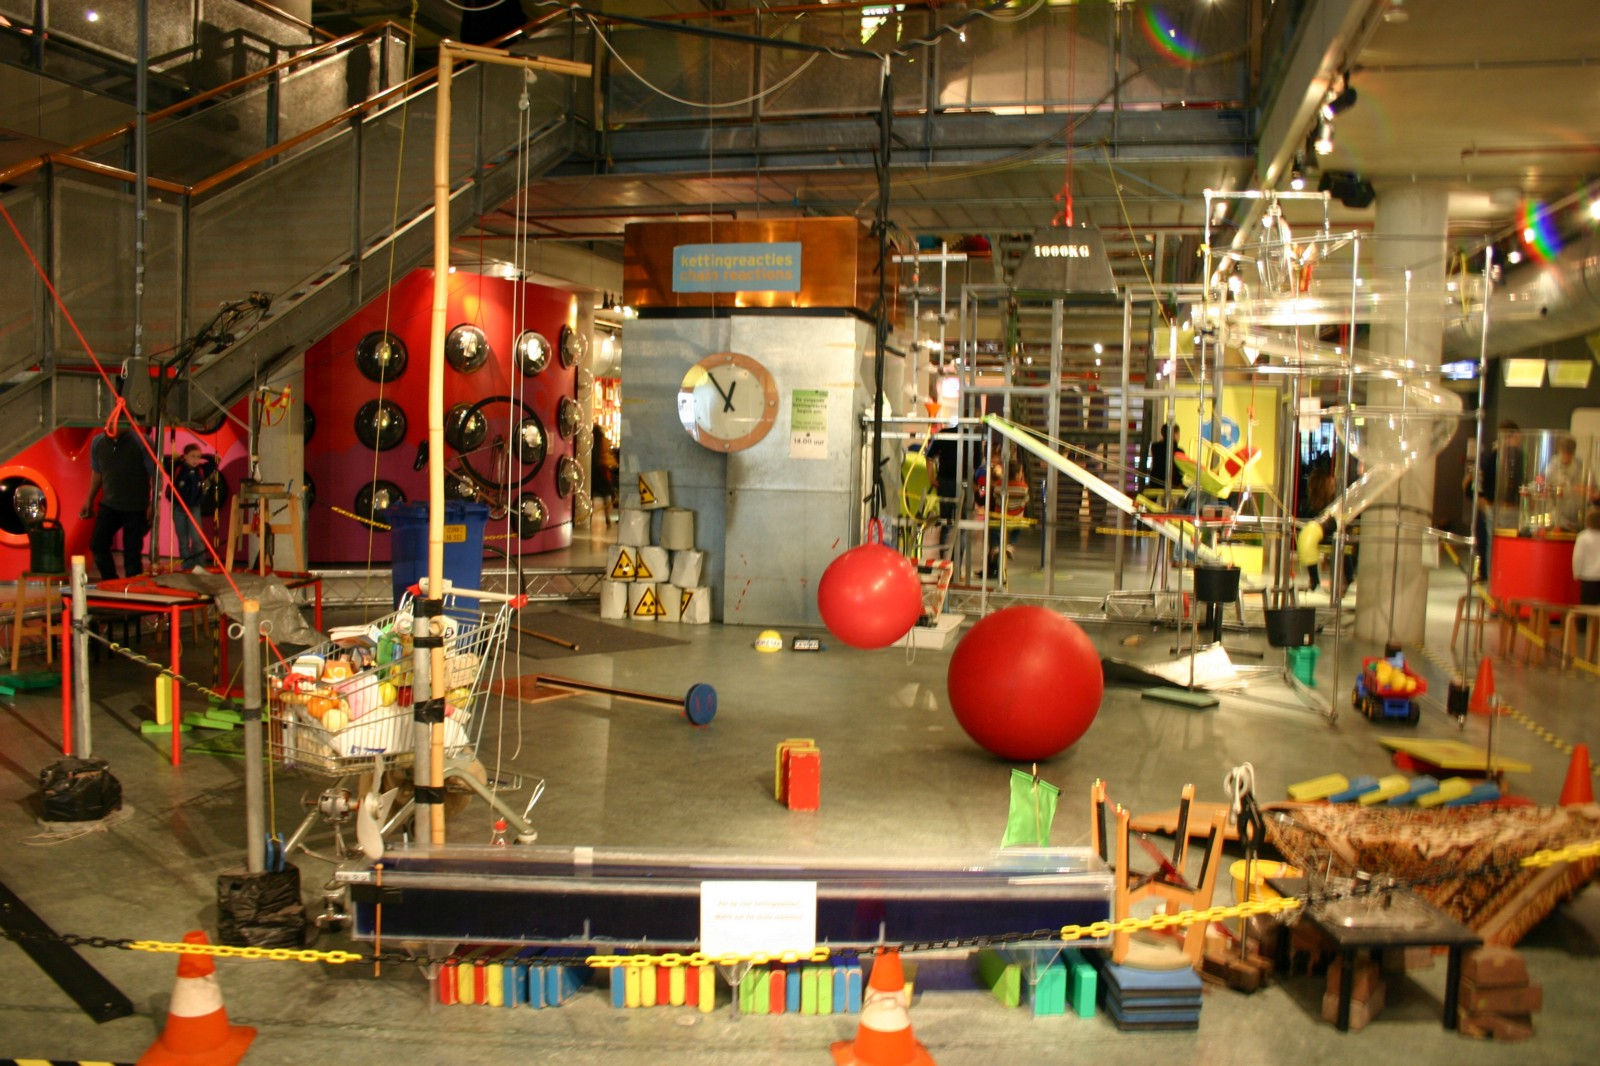 The Rube Goldberg Machine Security Tokens And Indirect Holding System